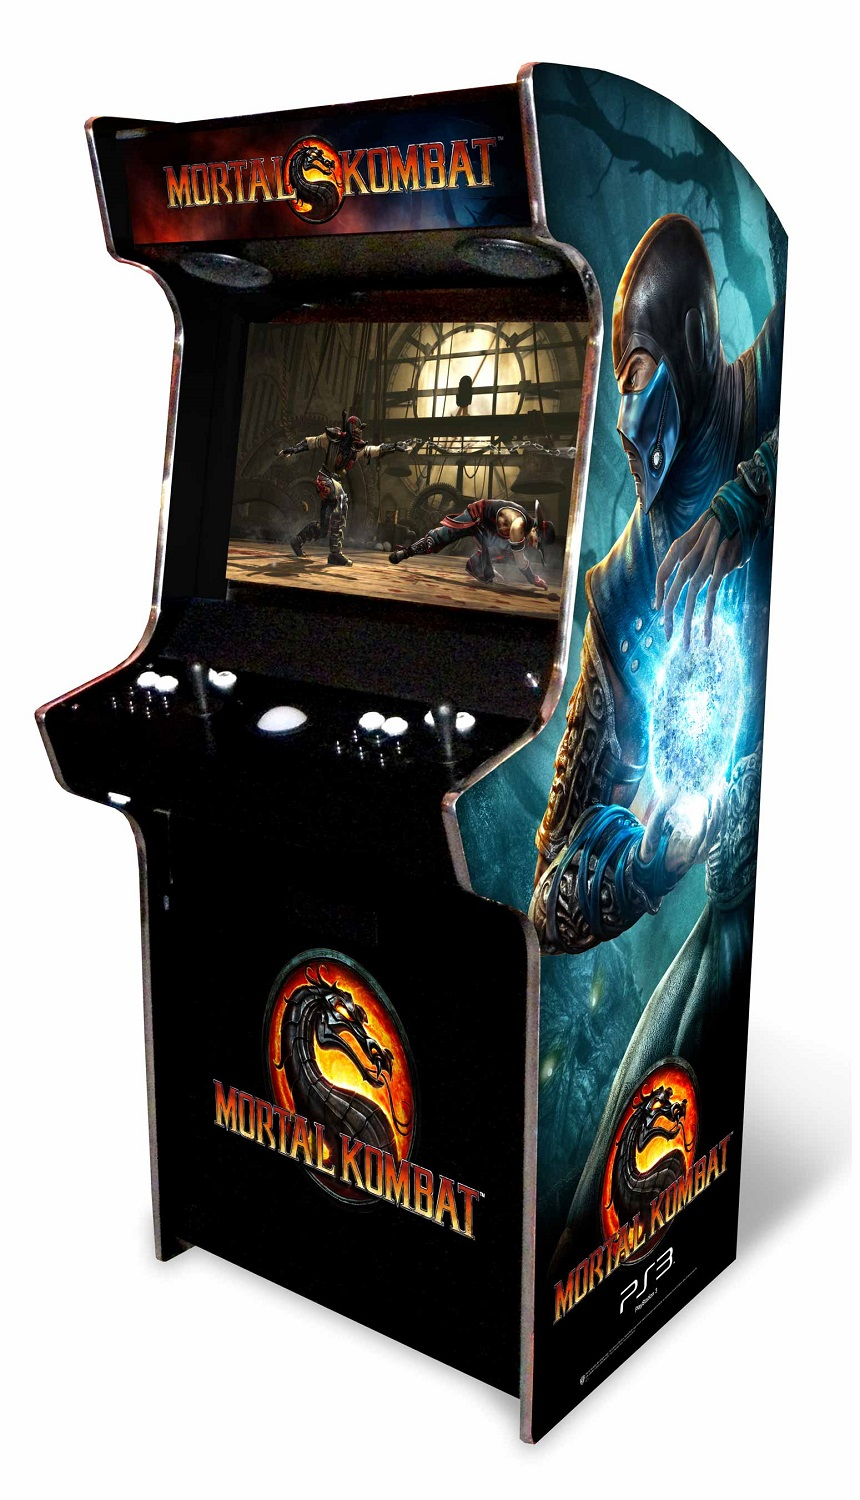 evo arcade machine arcade machines wotever. Black Bedroom Furniture Sets. Home Design Ideas